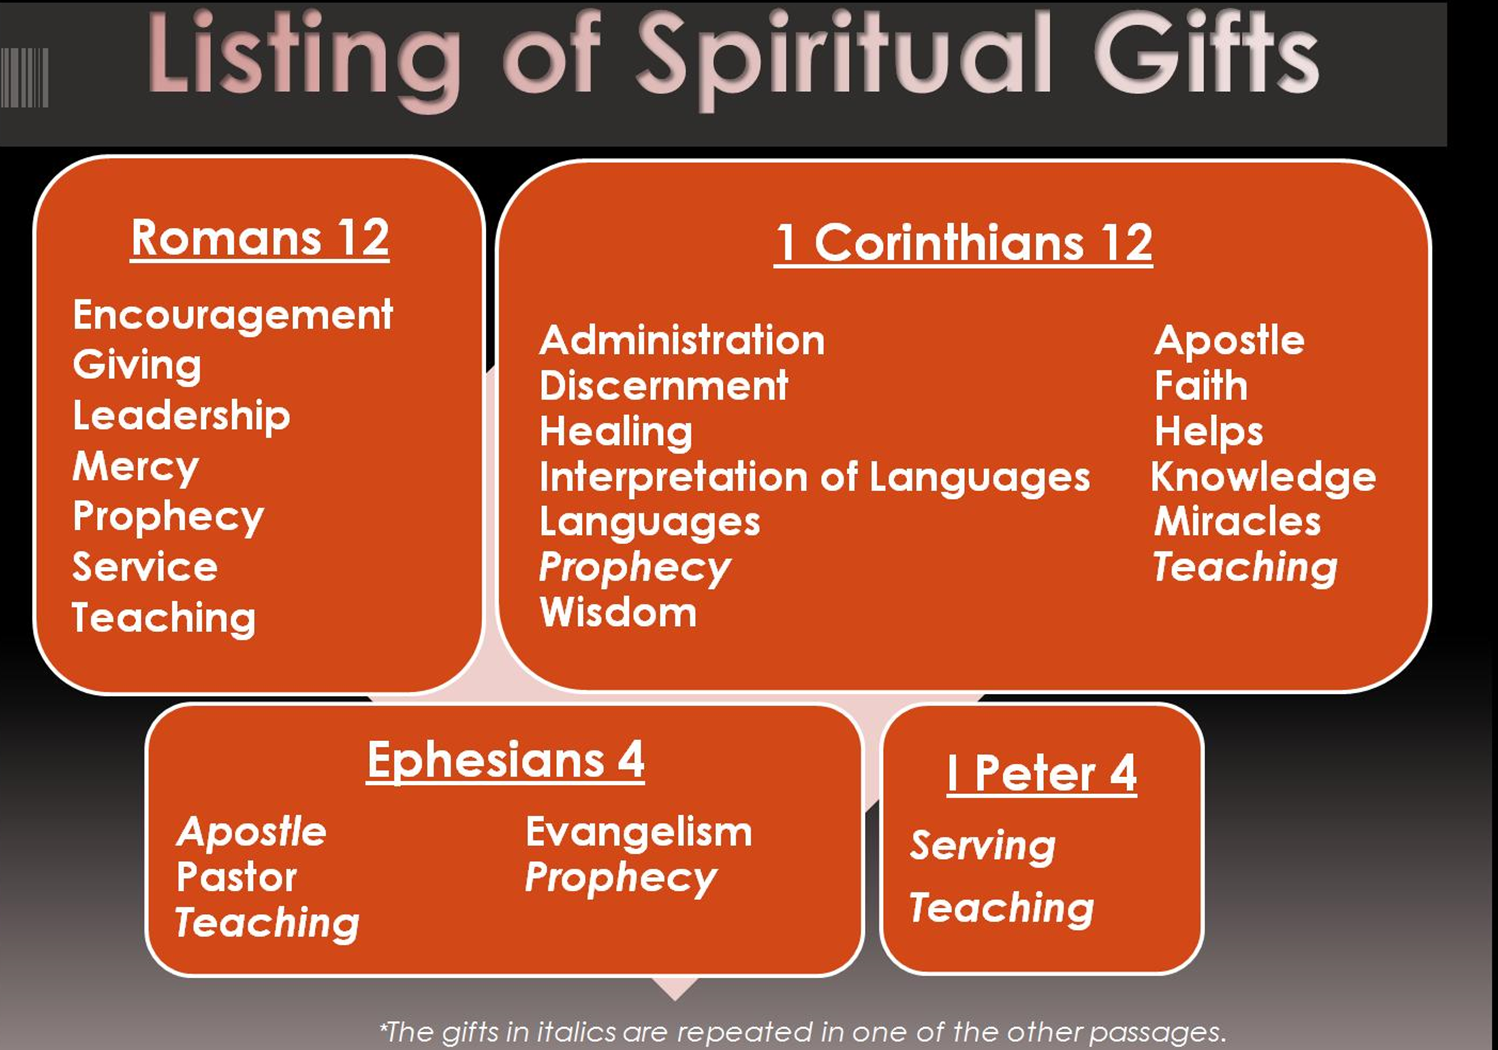 interesting green: reflection - what are spiritual gifts?